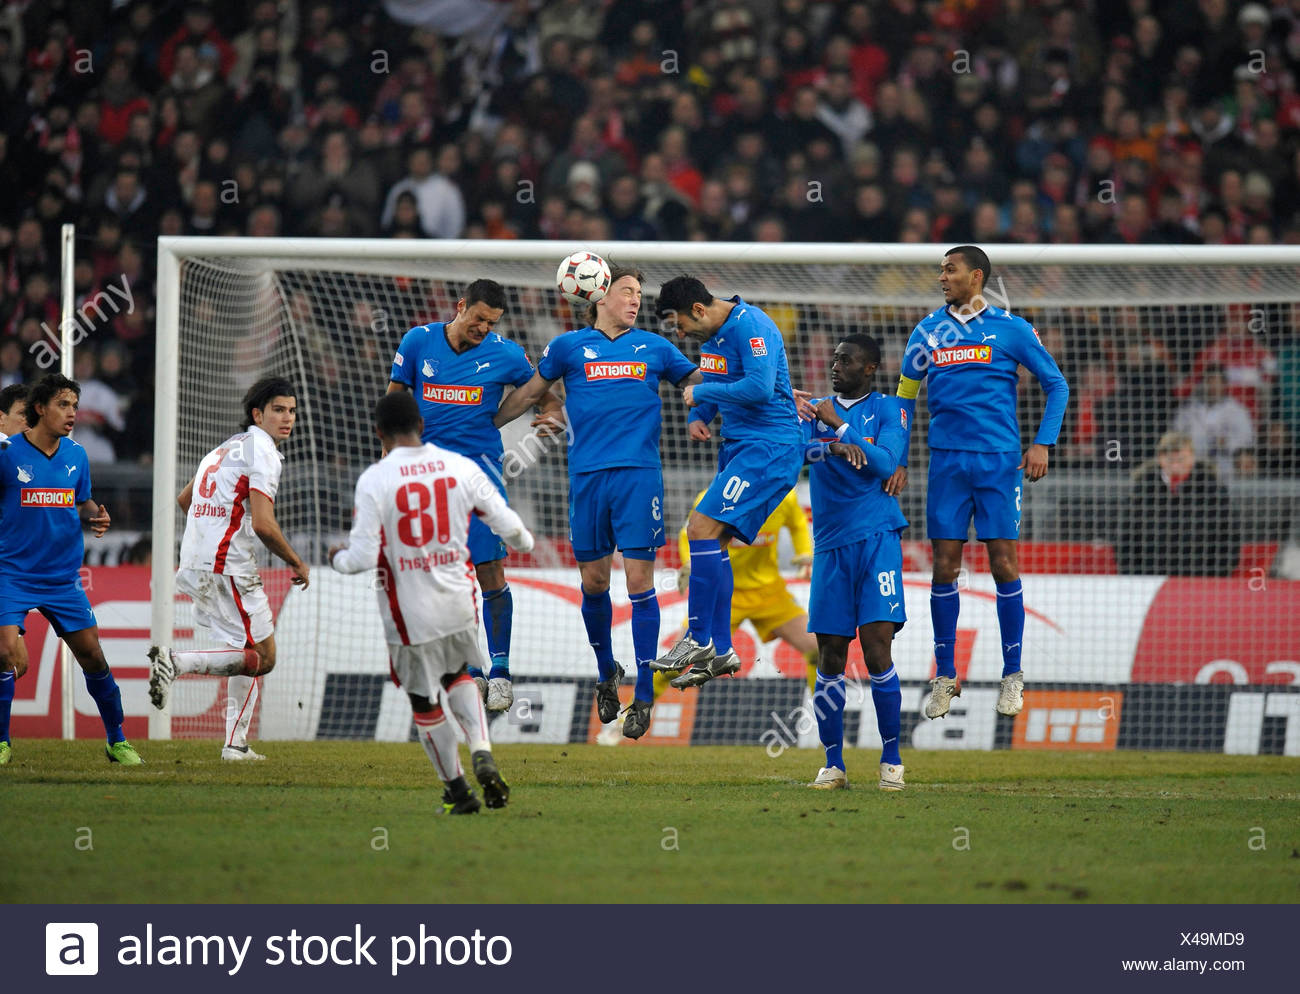 Penalty kick by Cacau, VfB Stuttgart, from left to right, Isaac Vorsah, Boubacar Sanogo, Selim Teber, Matthias Jessle, Sejad Sa - Stock Image